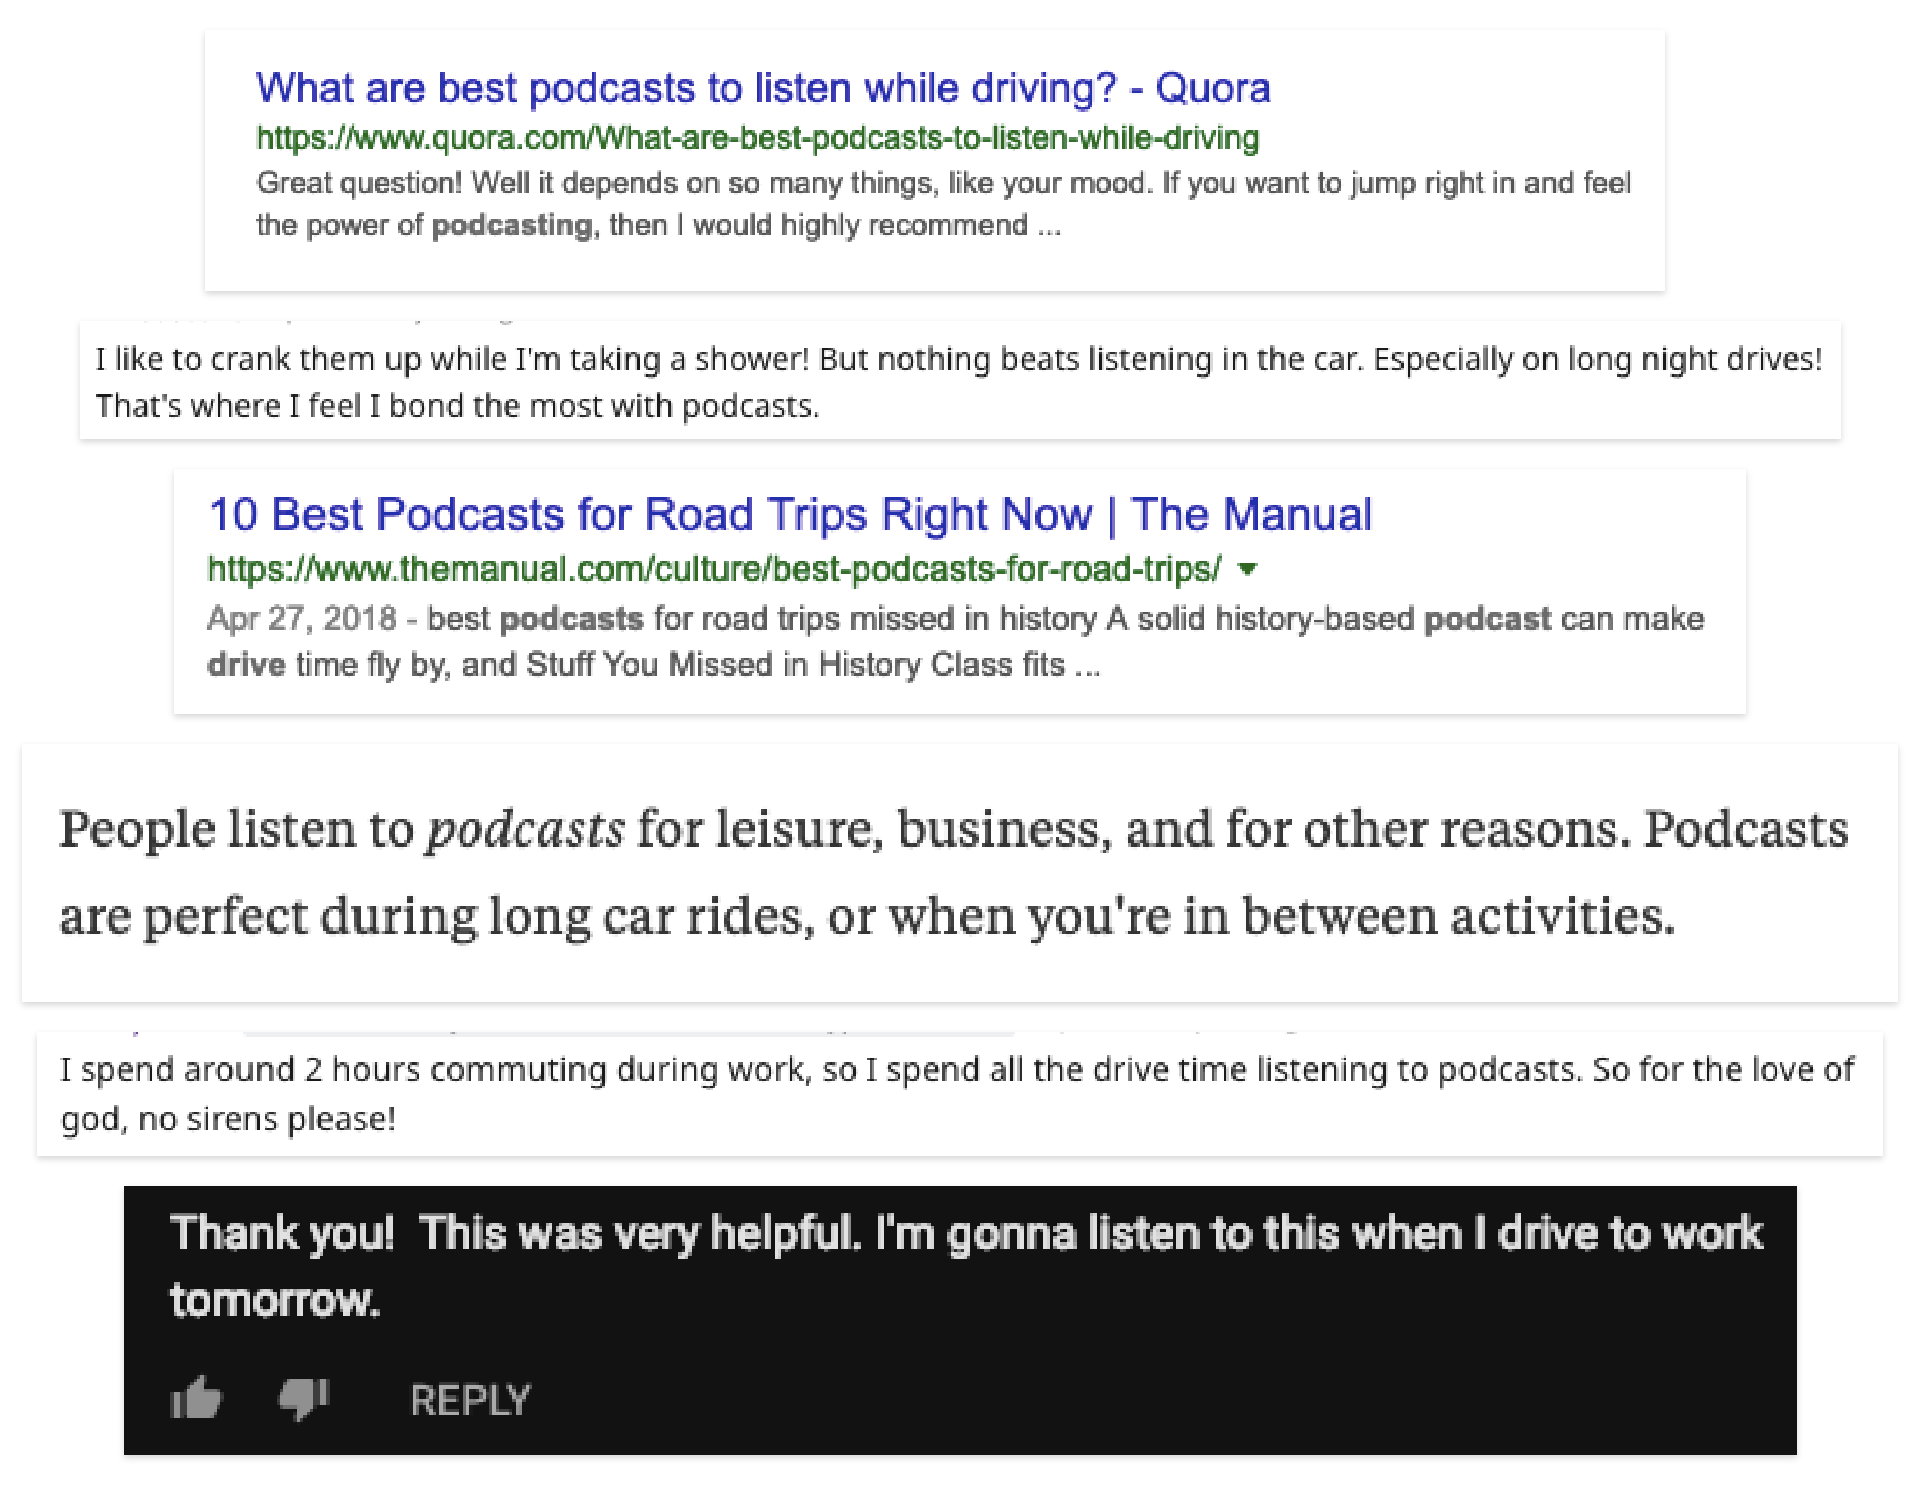 How a 5 Minute Daily Podcast Increased My Productivity 2X